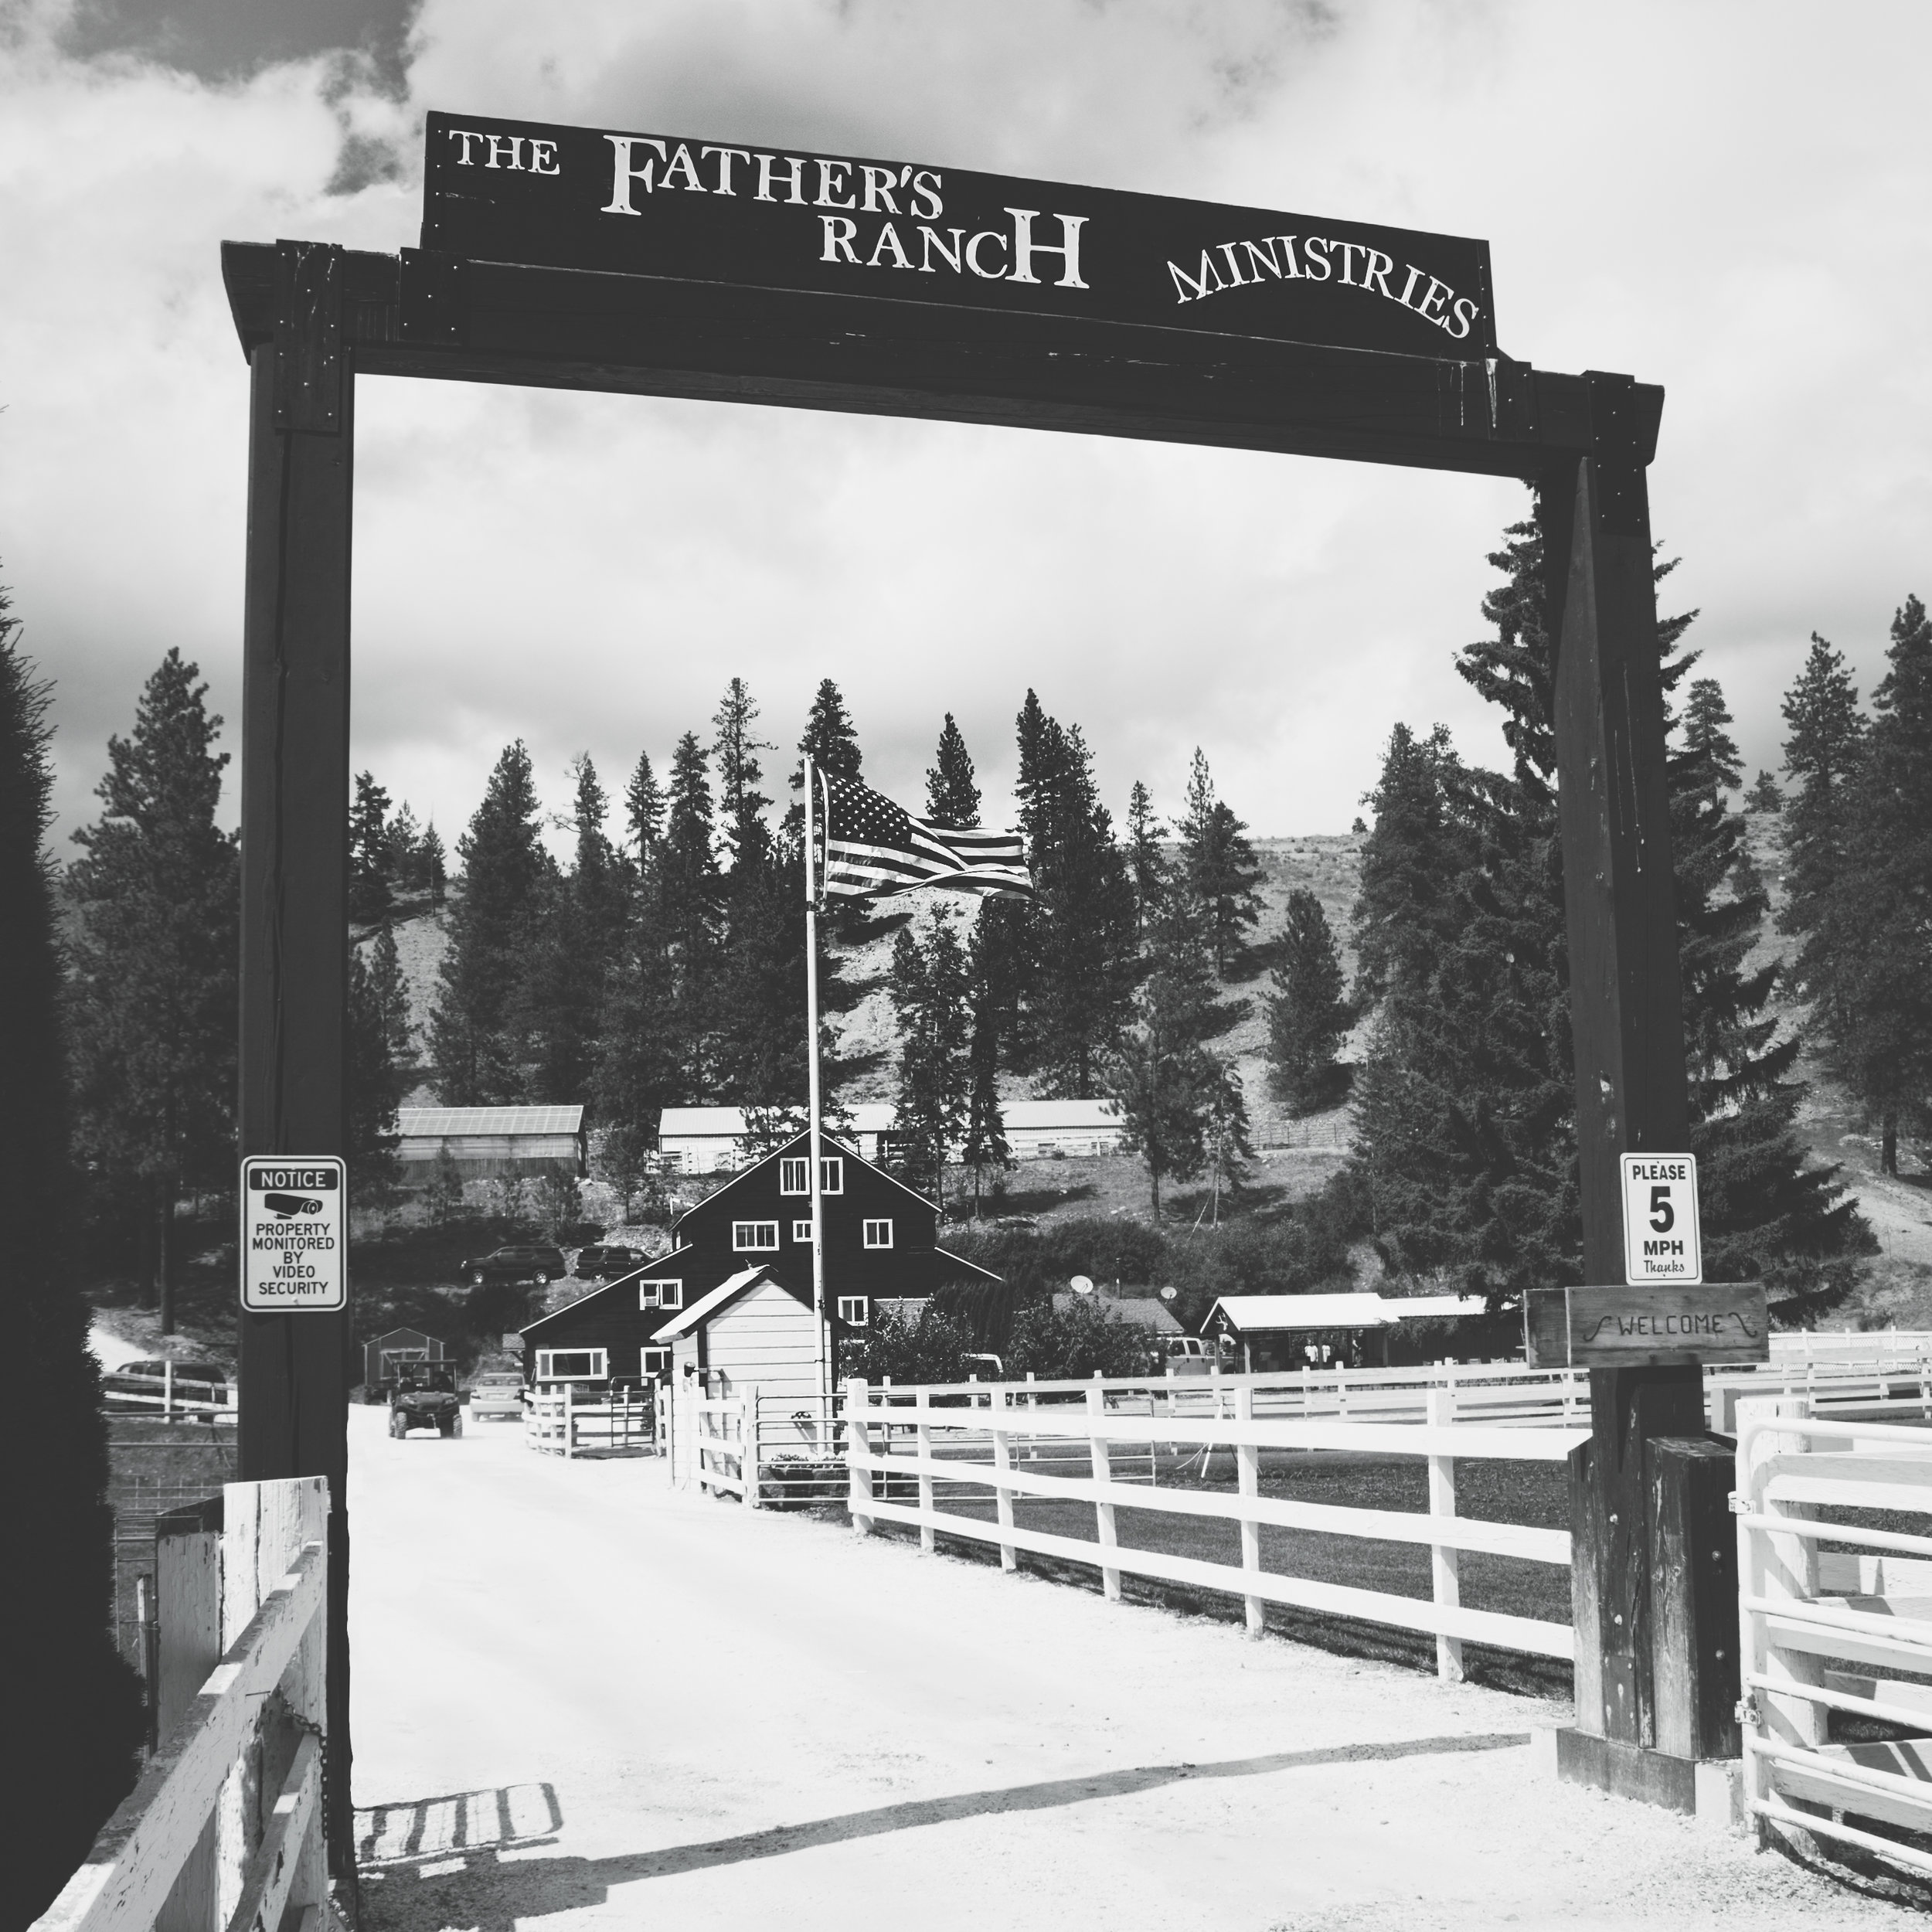 A Girls Ranch Christian Boarding School in Eastern Washington State in the Pacific Northwest  Serving Elementary School, Middle School, High School, and Online College Students